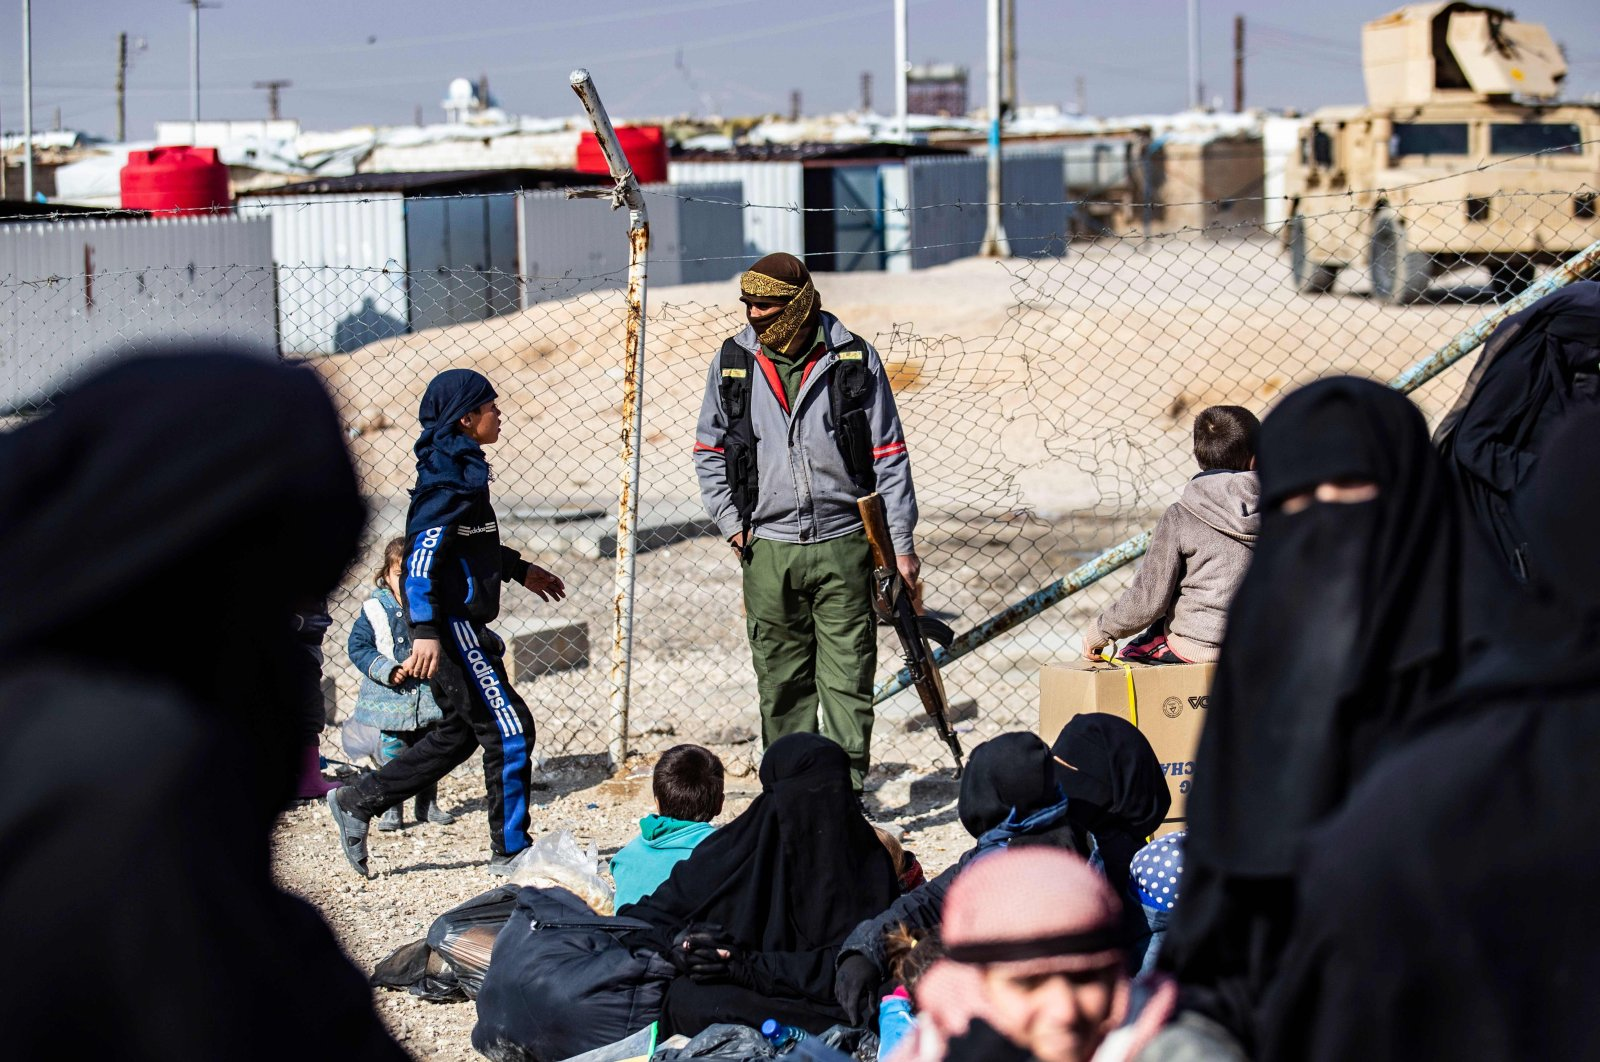 A YPG terrorist group member stands guard as women lead children ahead of departure during the release of another group of Syrian families from the al-Hol camp, which holds suspected relatives of Daesh fighters, in the al-Hasakah governorate, northeastern Syria, Jan. 28, 2021. (AFP Photo)